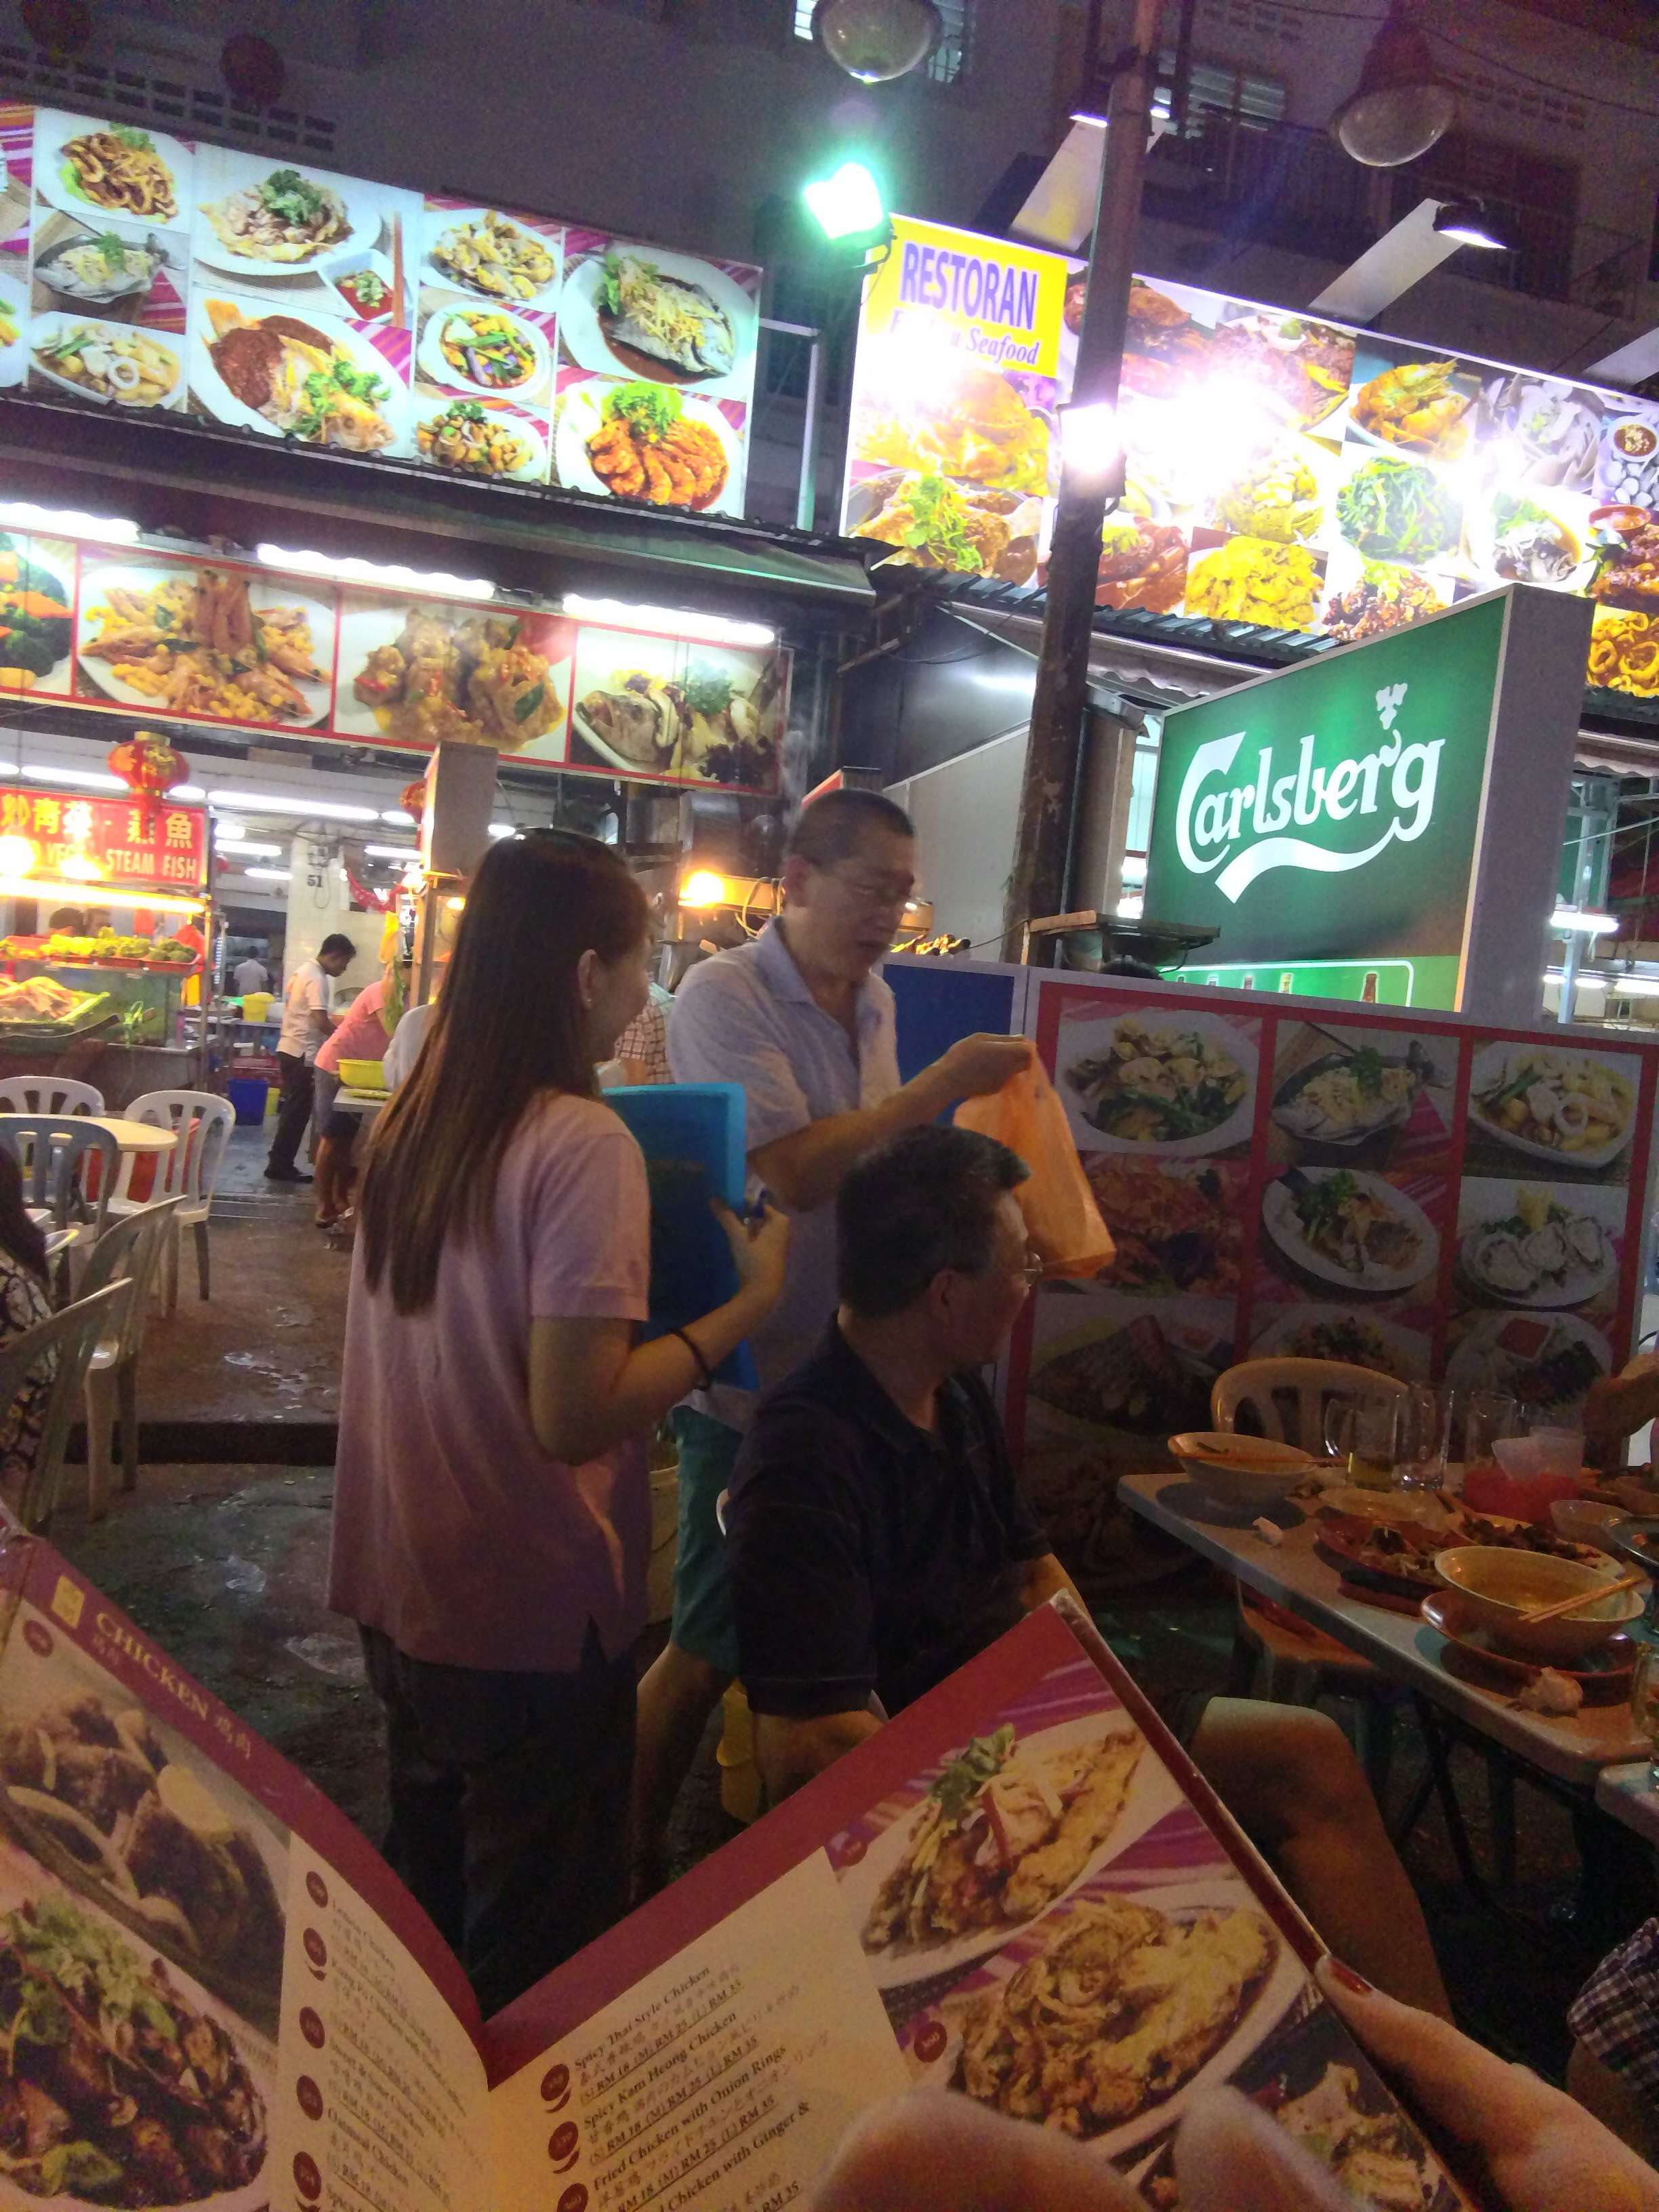 About to order food at a famous food stall in Jalan Alor